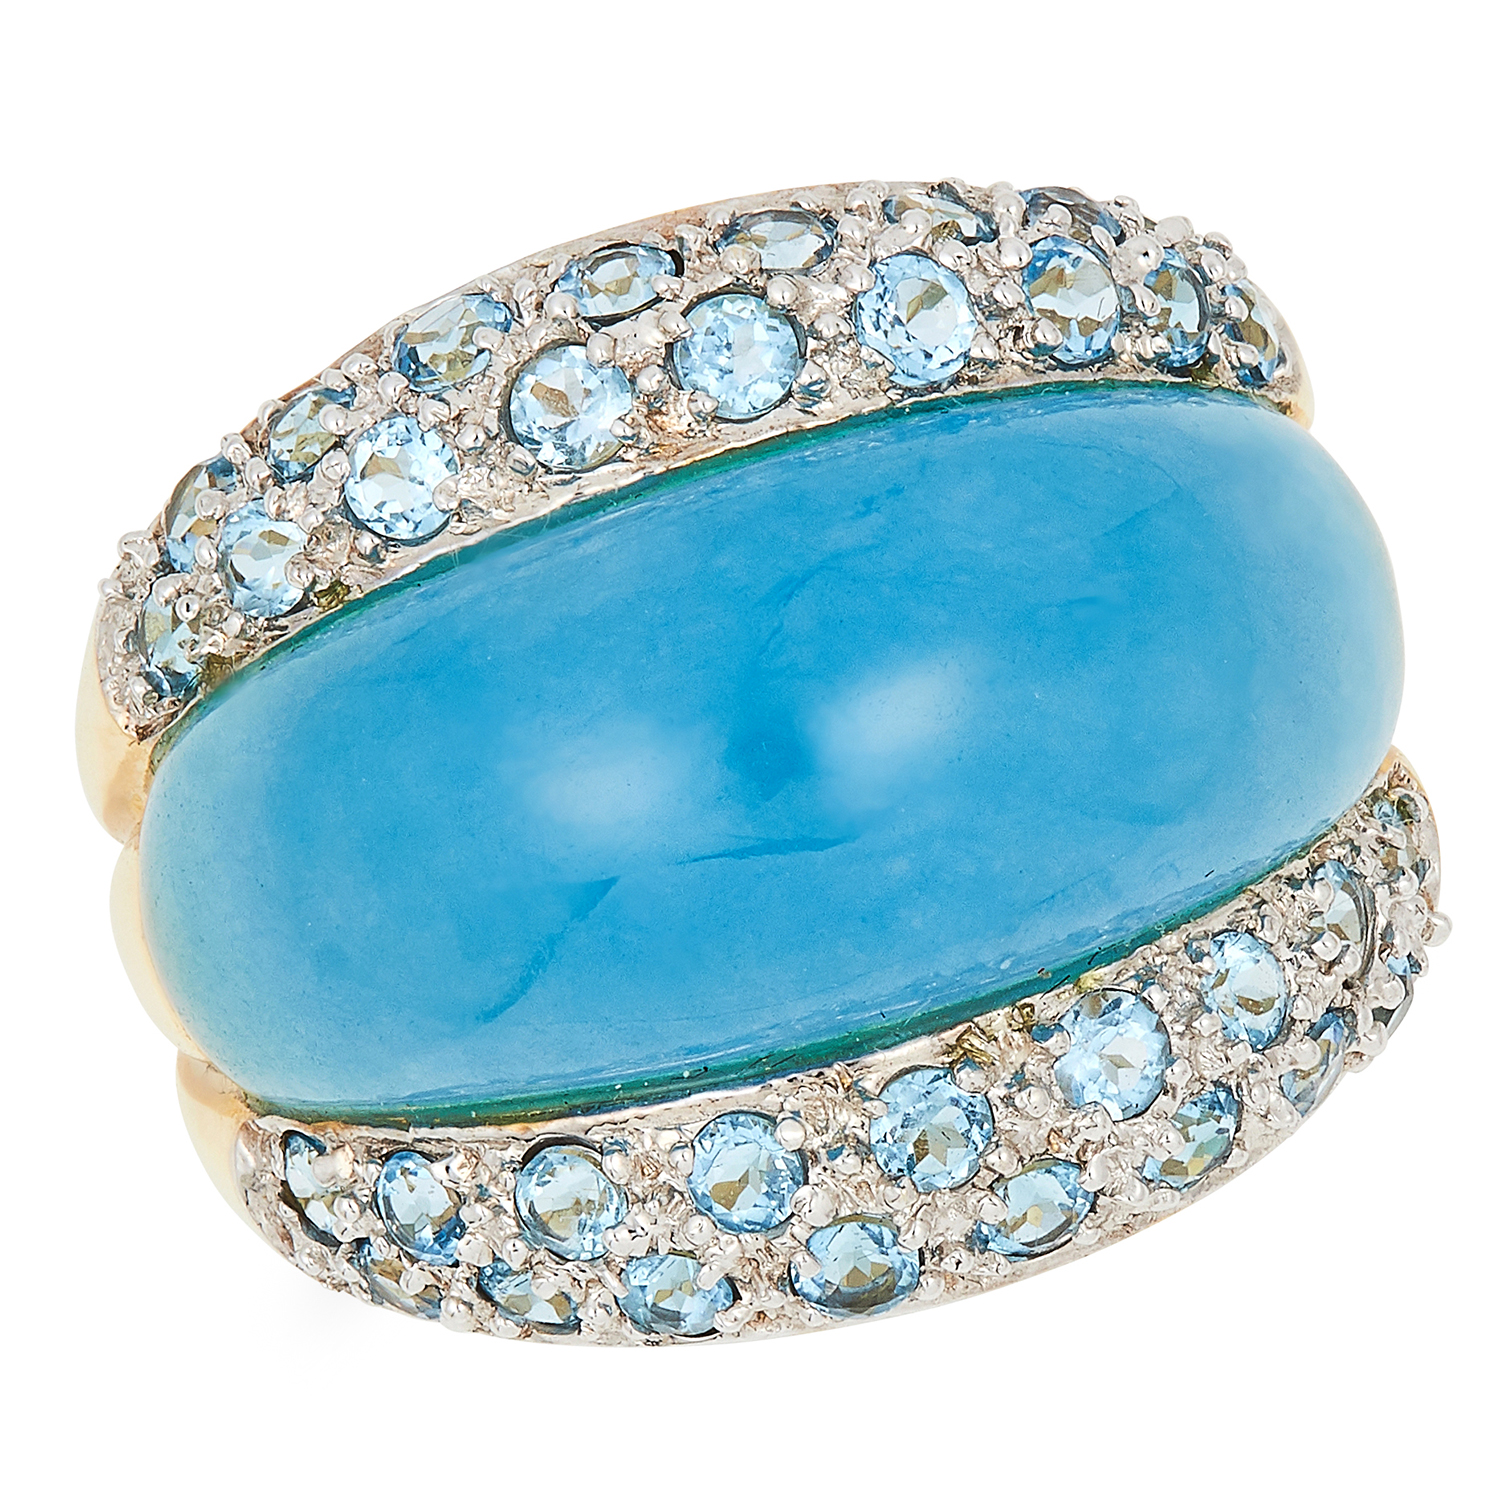 Los 237 - BLUE BOMBE RING, set with a blue hard stone and round cut blue stones, size M / 6, 7.1g.